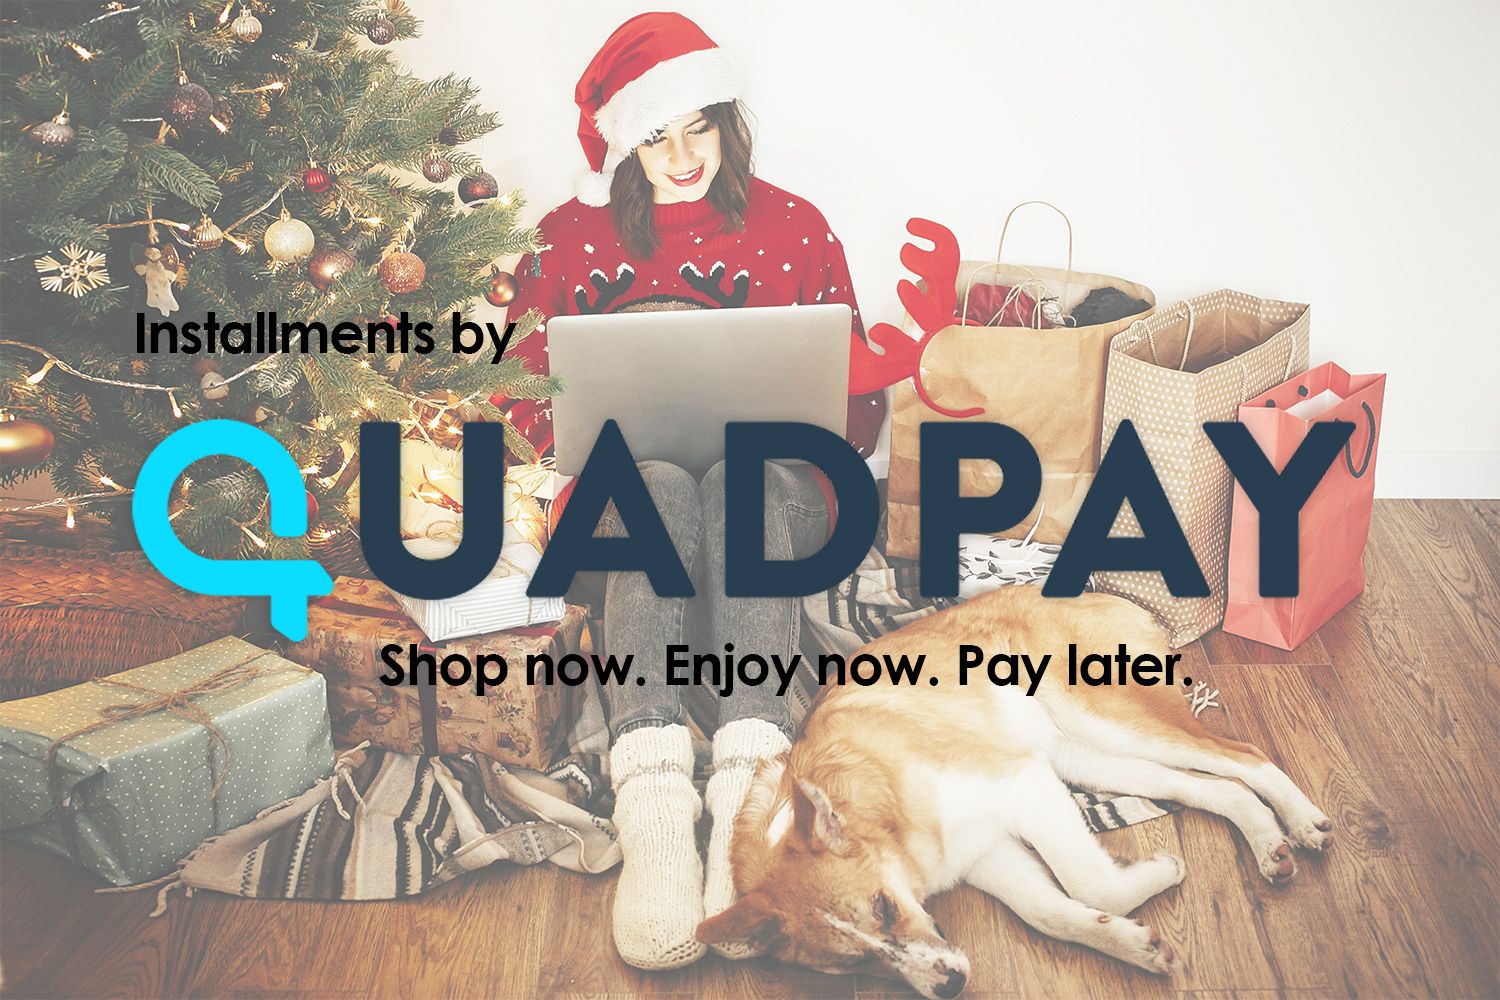 QuadPay for Dog is Good